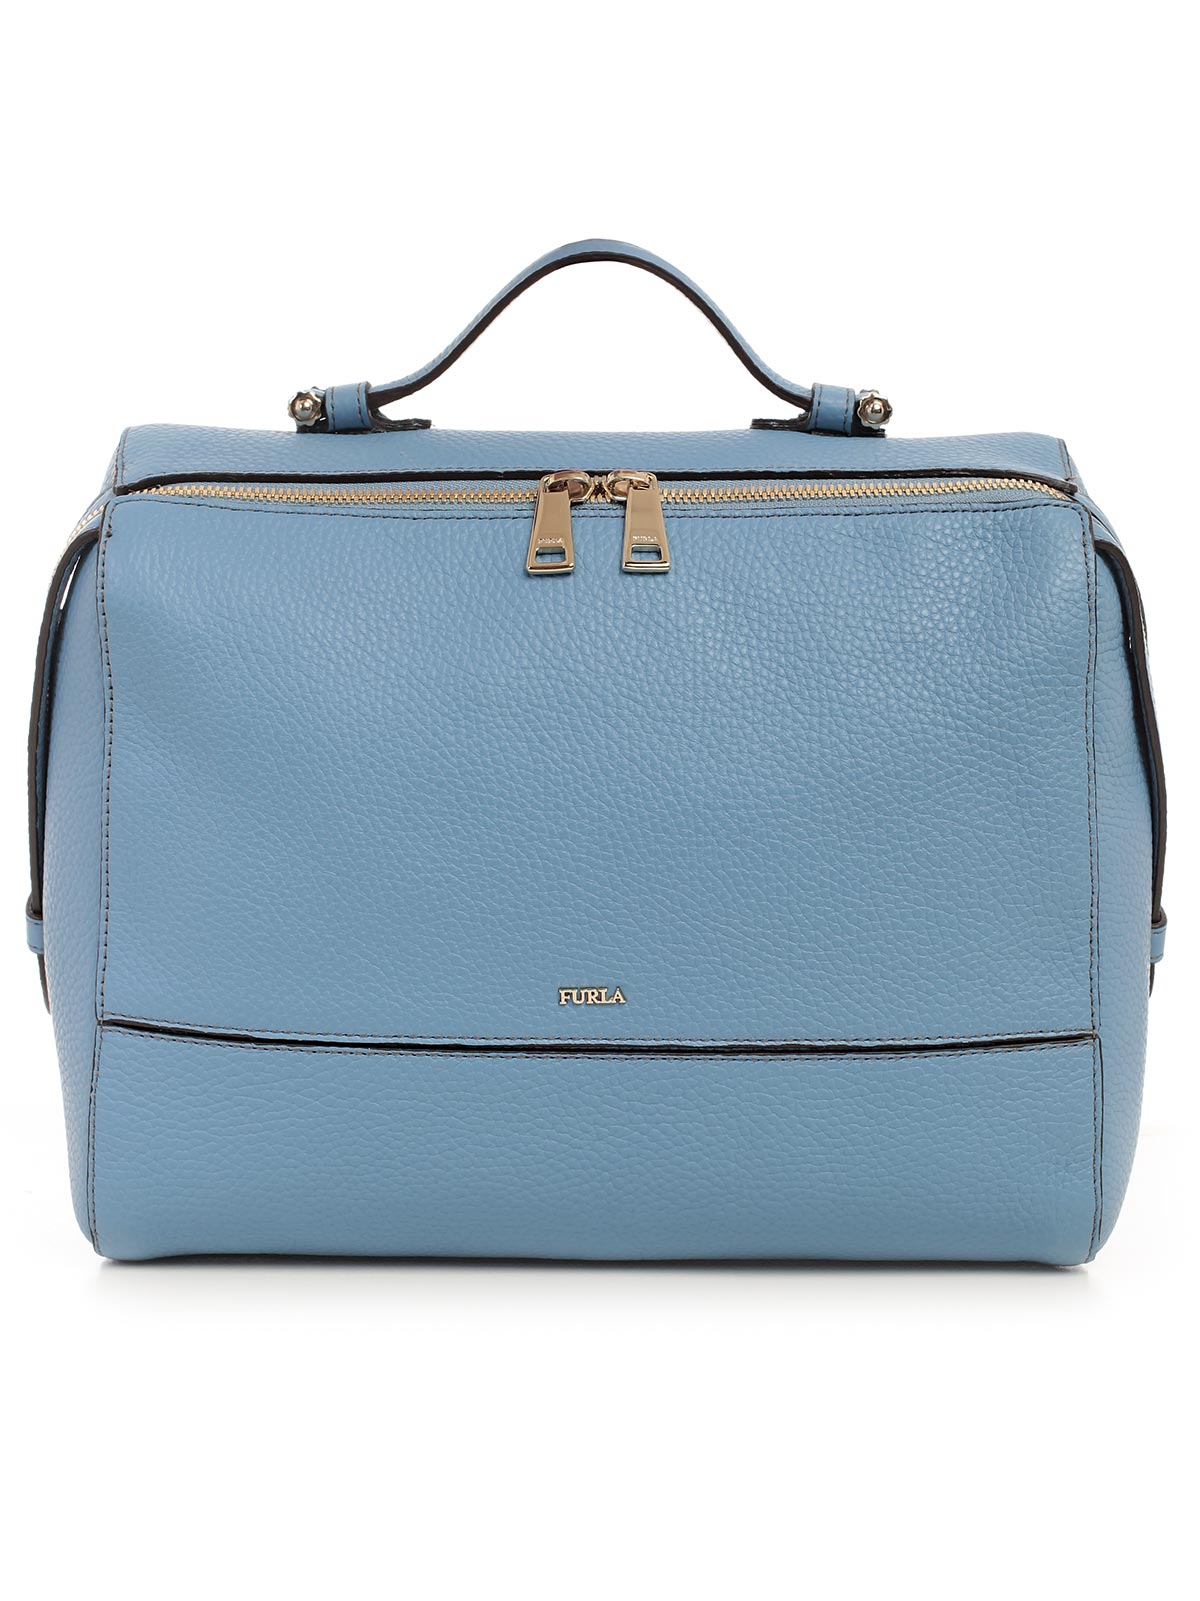 Picture of Furla Totes